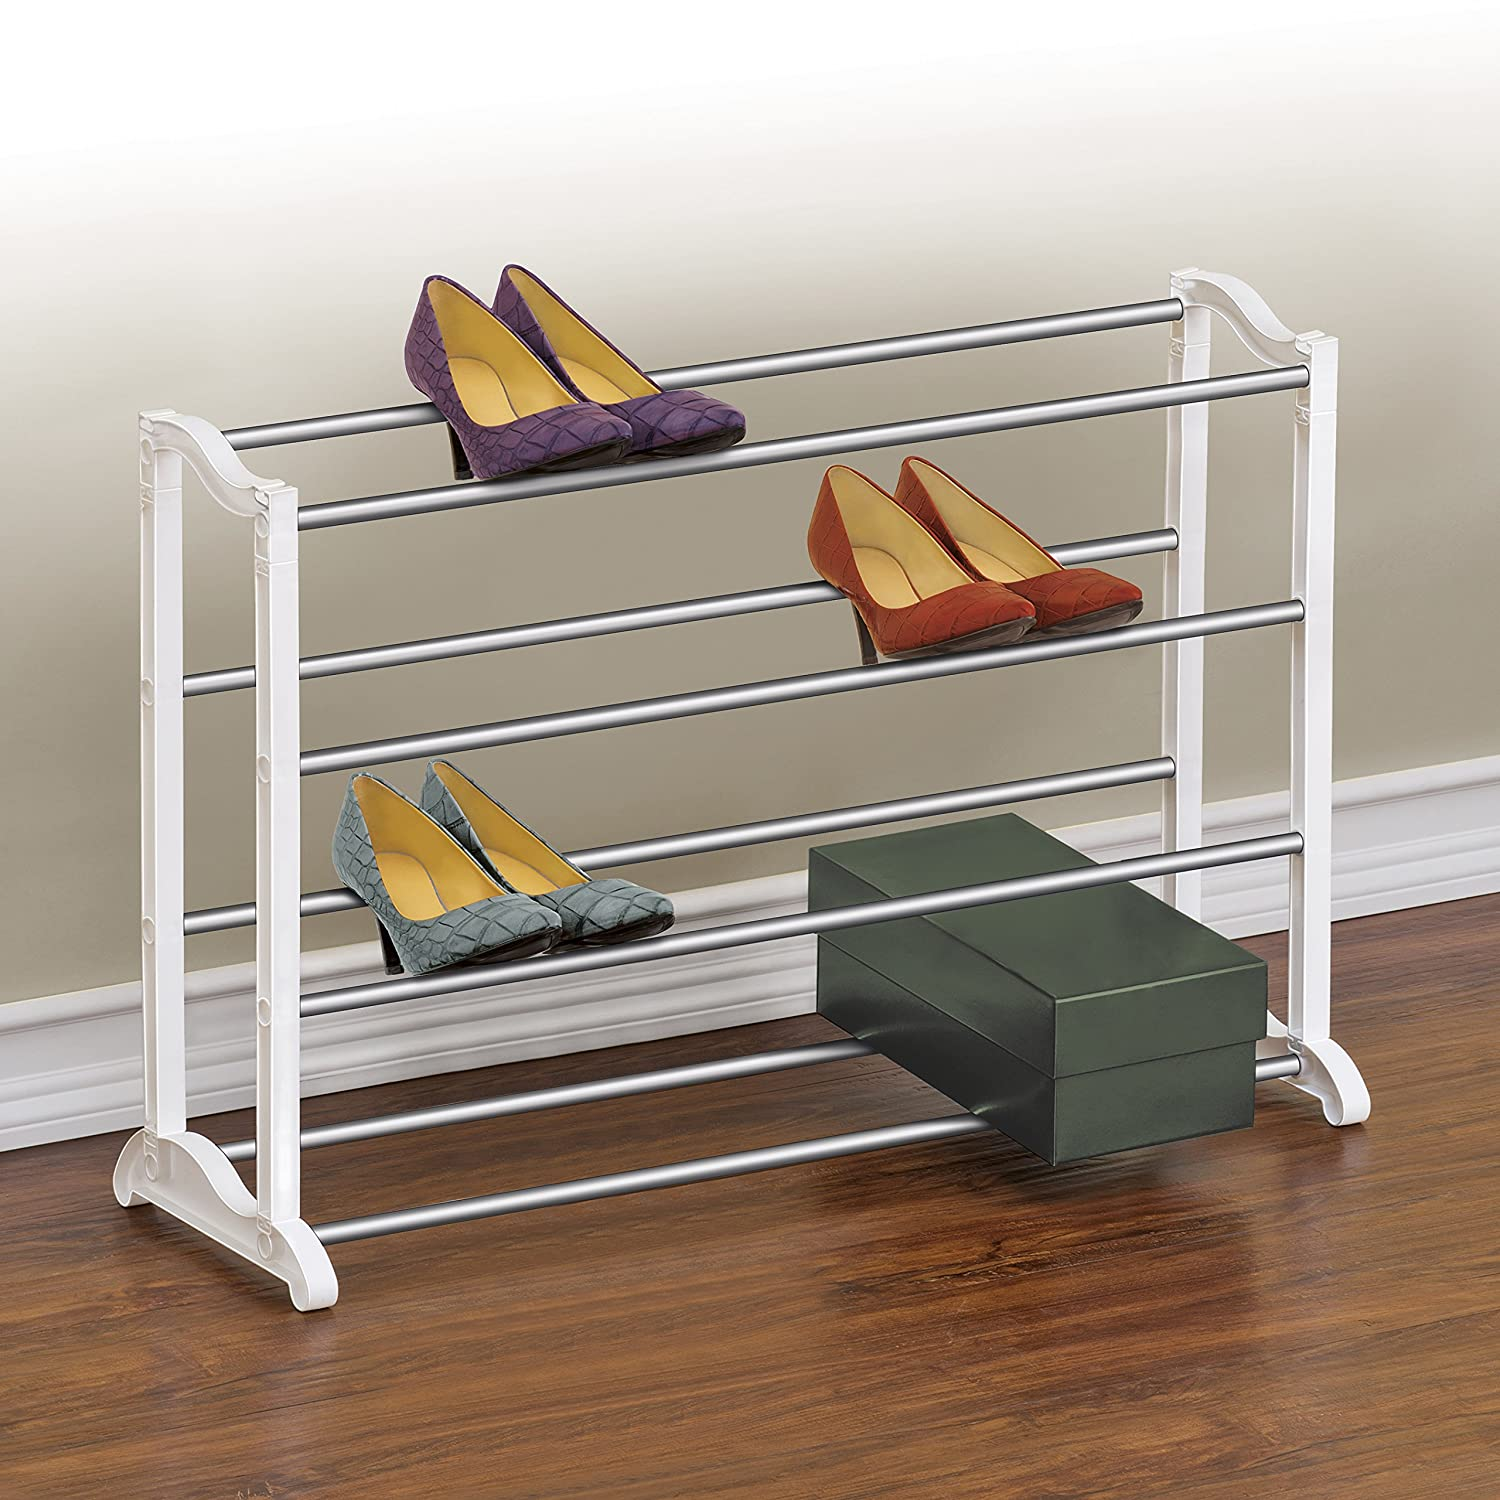 amazoncom lynk 20 pair shoe rack 4 tier shoe shelf organizer white home u0026 kitchen